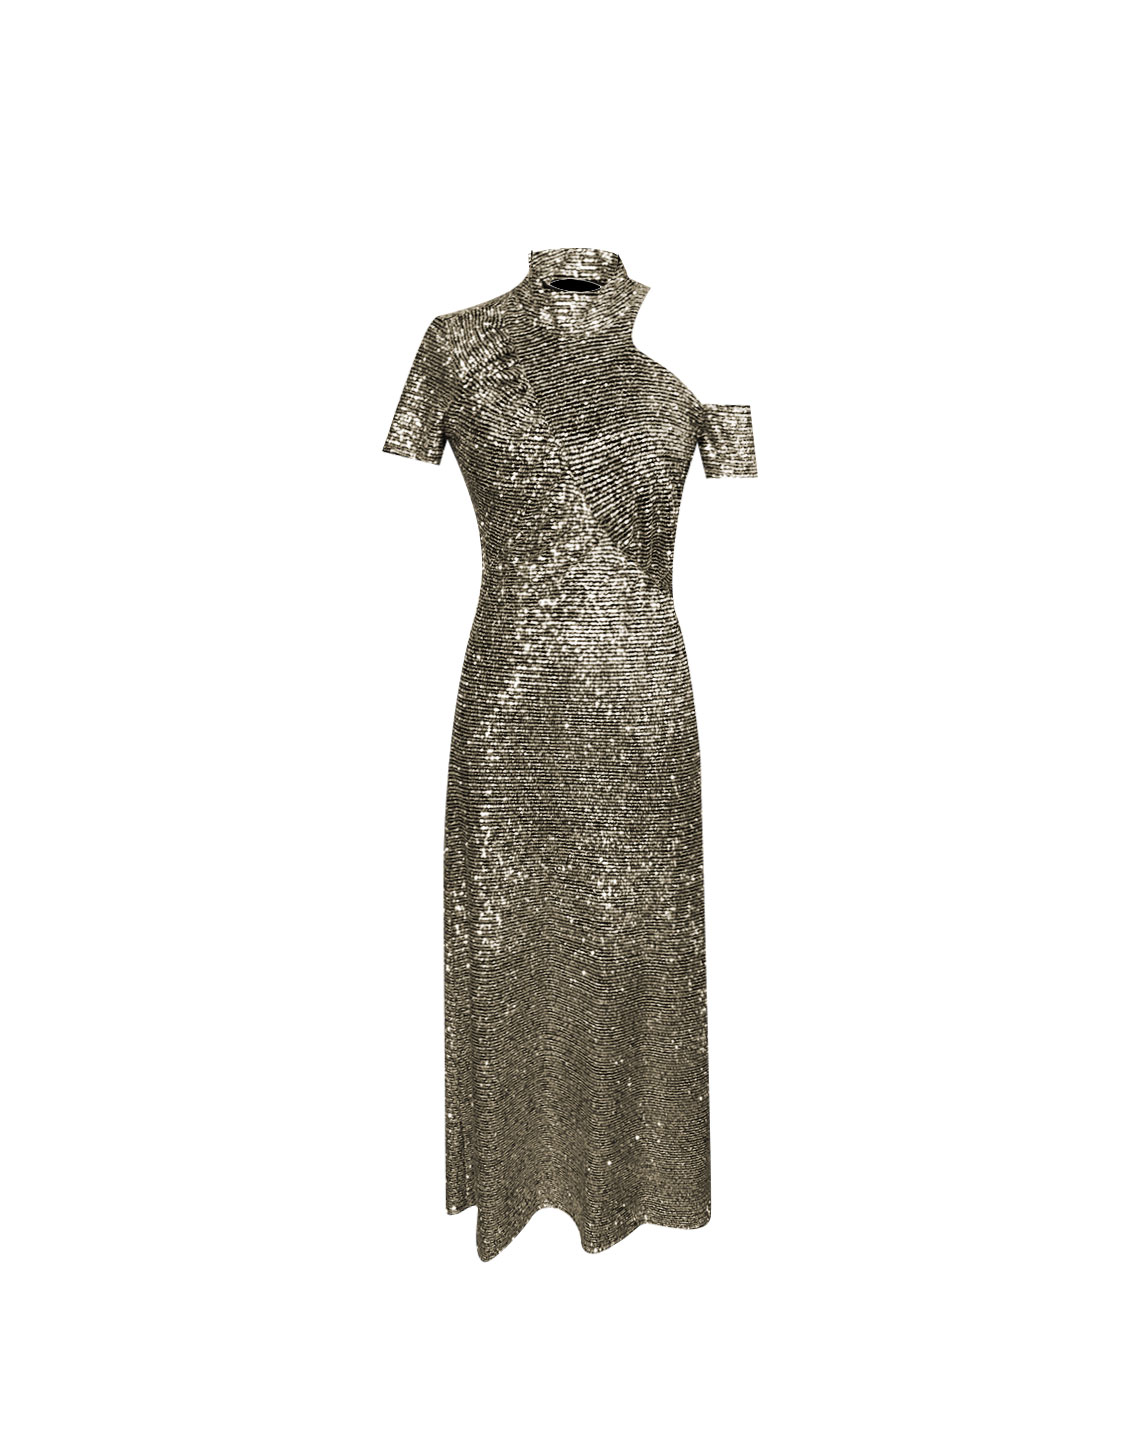 Celtic Dress - Sequins Gold by Jessica K on curated-crowd.com